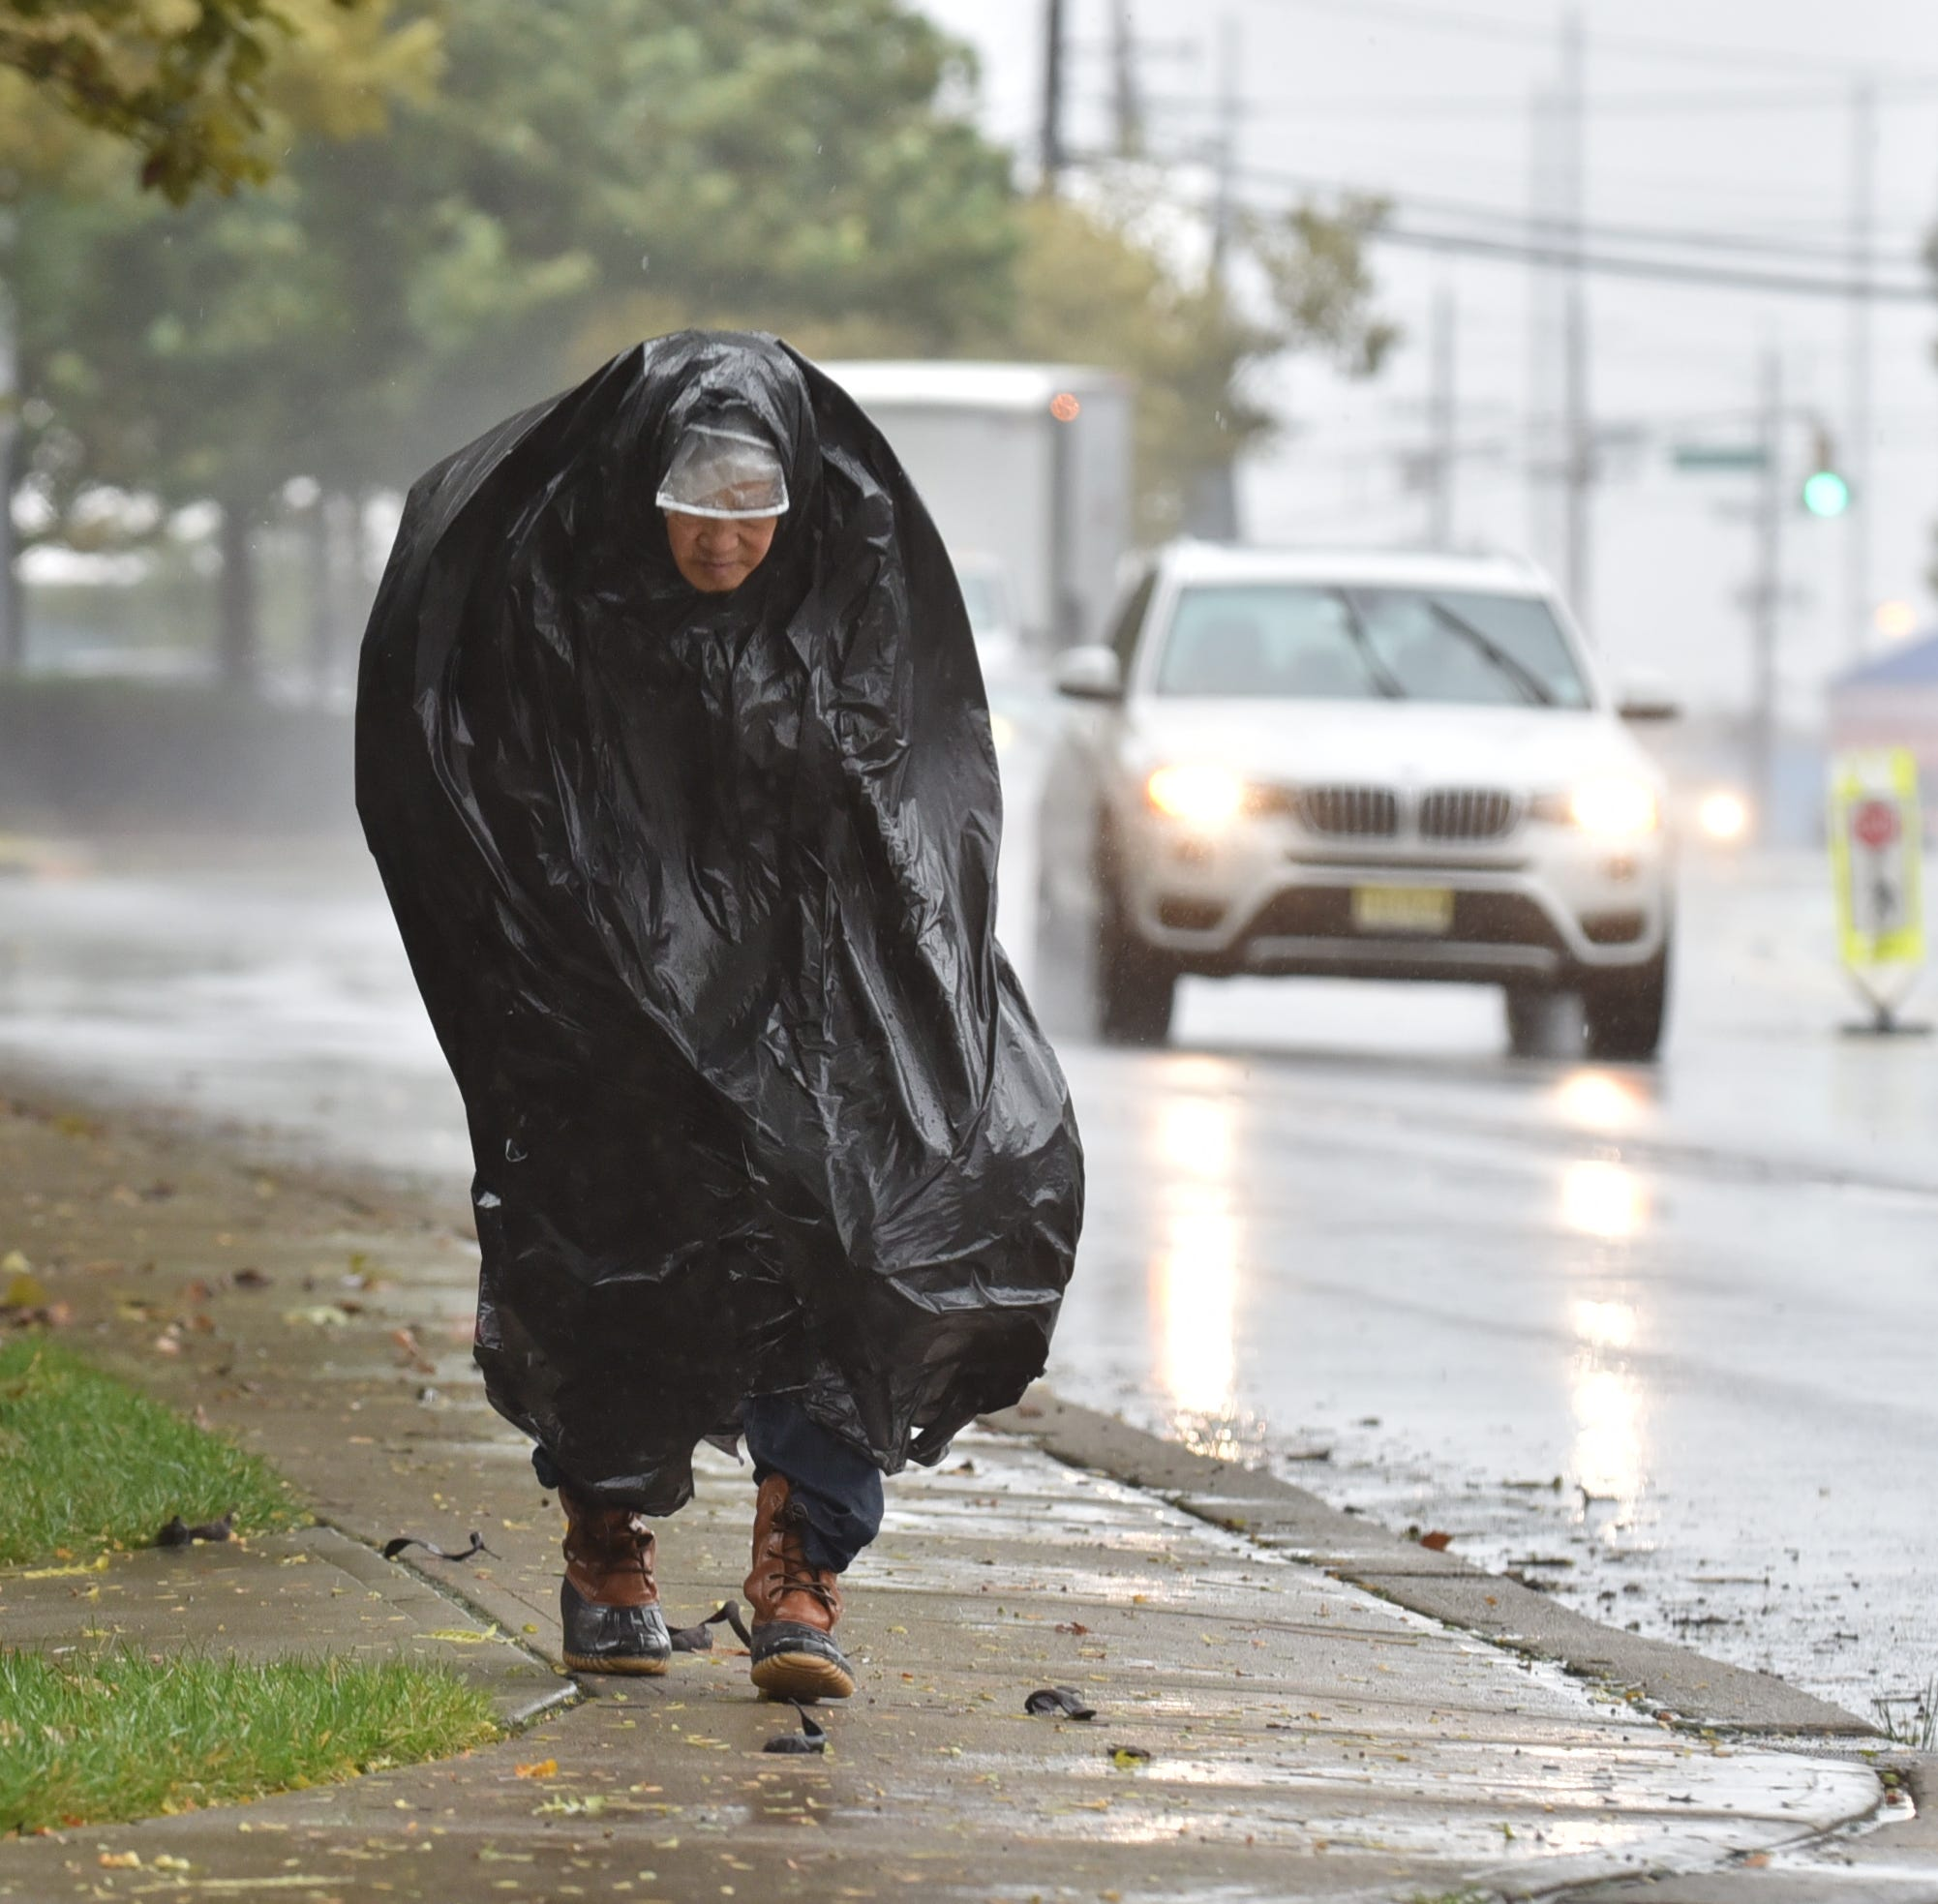 NJ Weather: Flash flood watch canceled, but wind and rain expected the rest of the day